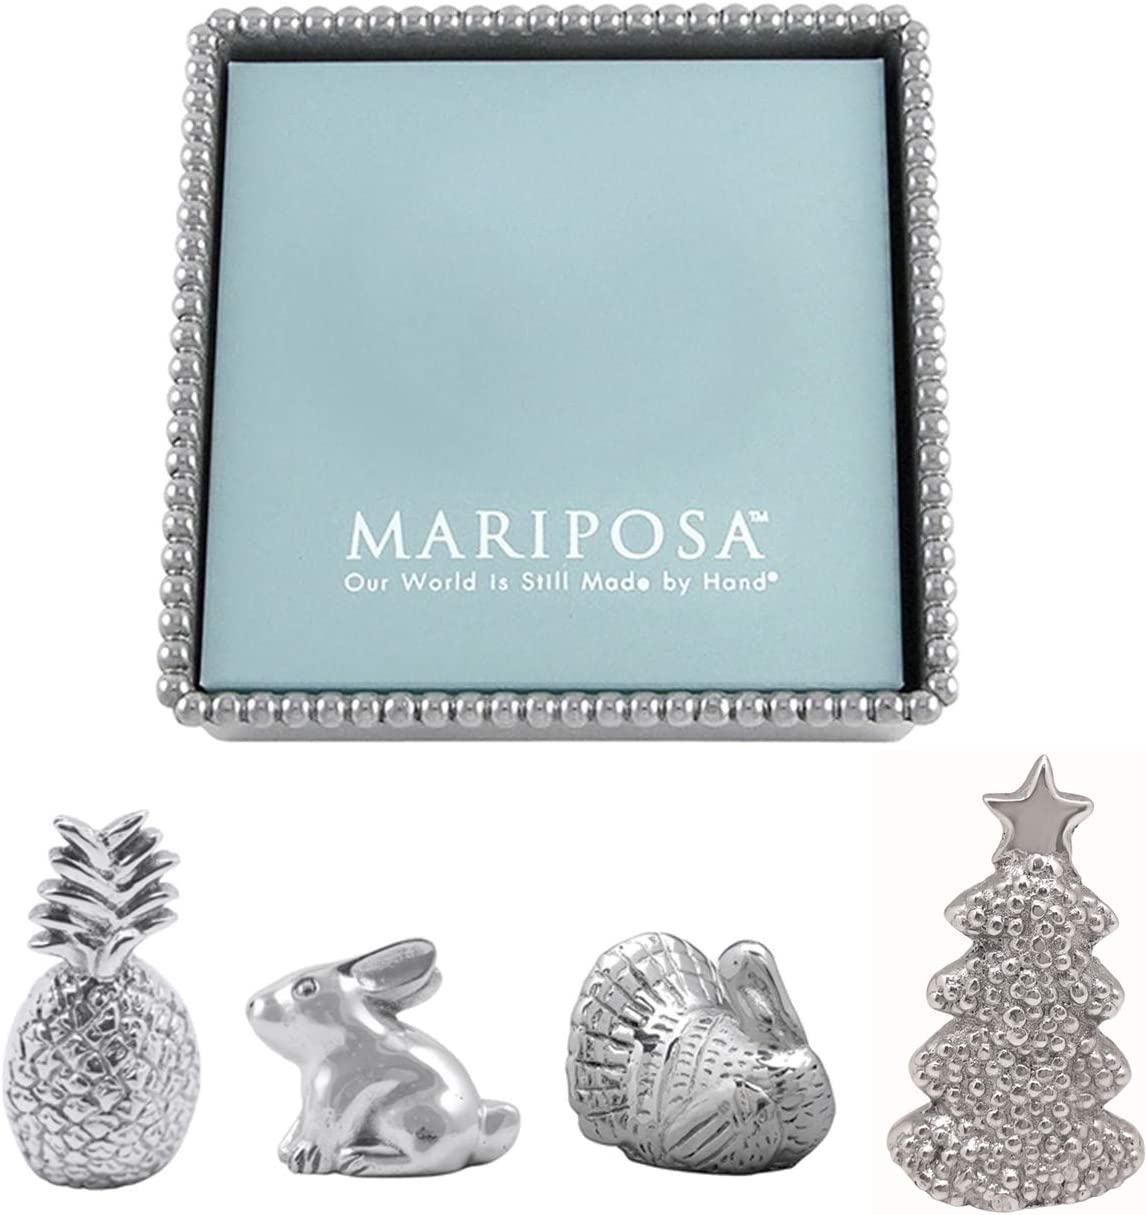 Mariposa Beaded Outlet SALE Napkin Box and Philadelphia Mall Set of 4 Weights - Turkey